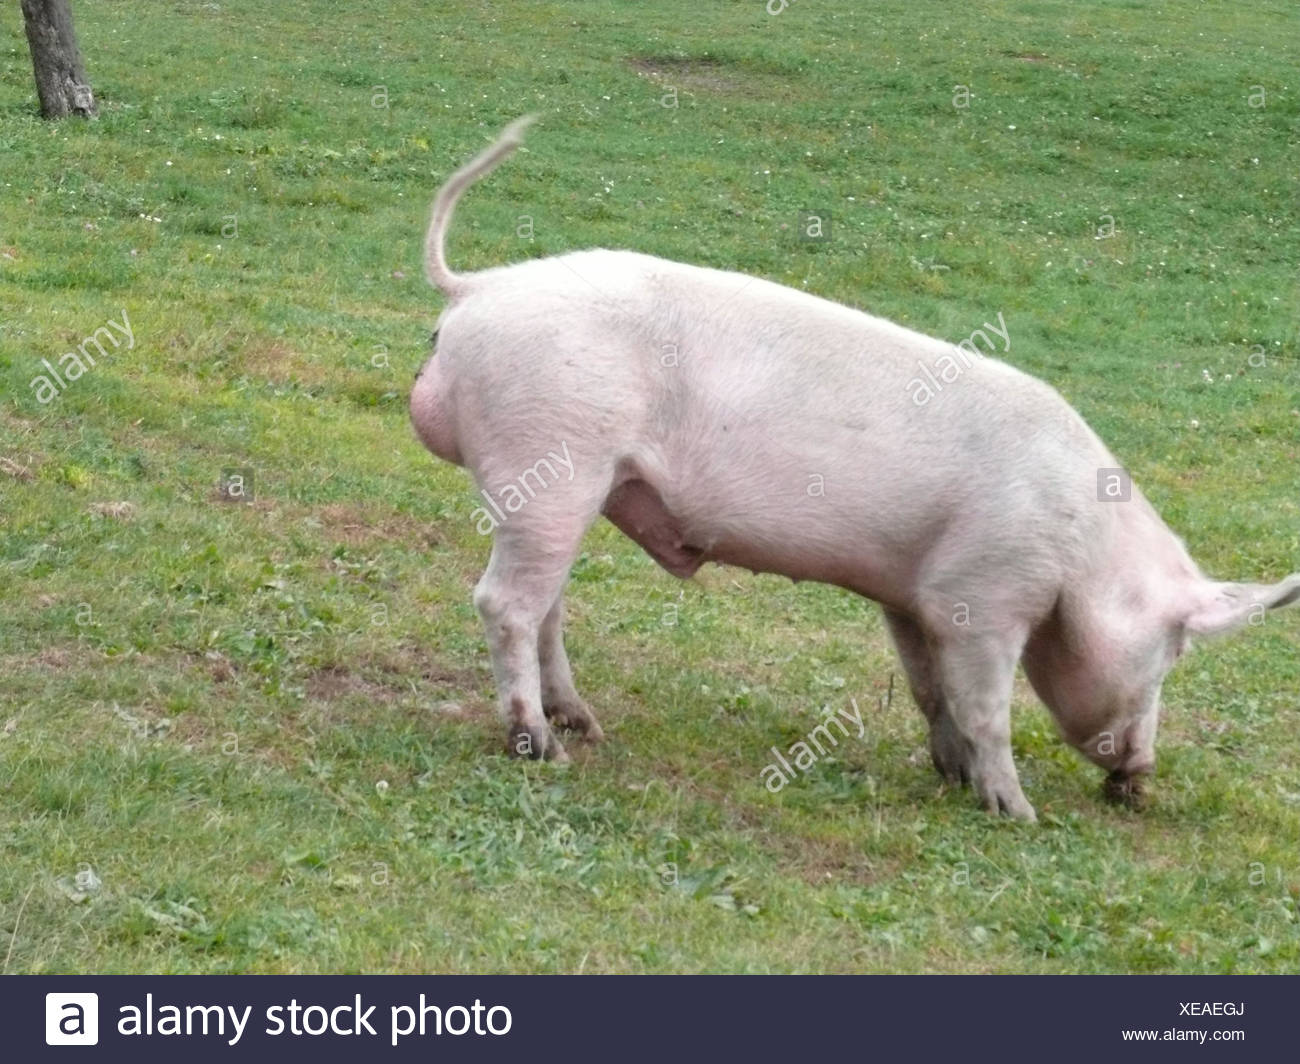 Pig, meadow, hillside, neutral-finishes, animal, mammal, usefulness-animal, house-pig, animal husbandry, cattle-raising, animal-attitude, artgerecht, pink, boars, male, outside, - Stock Image